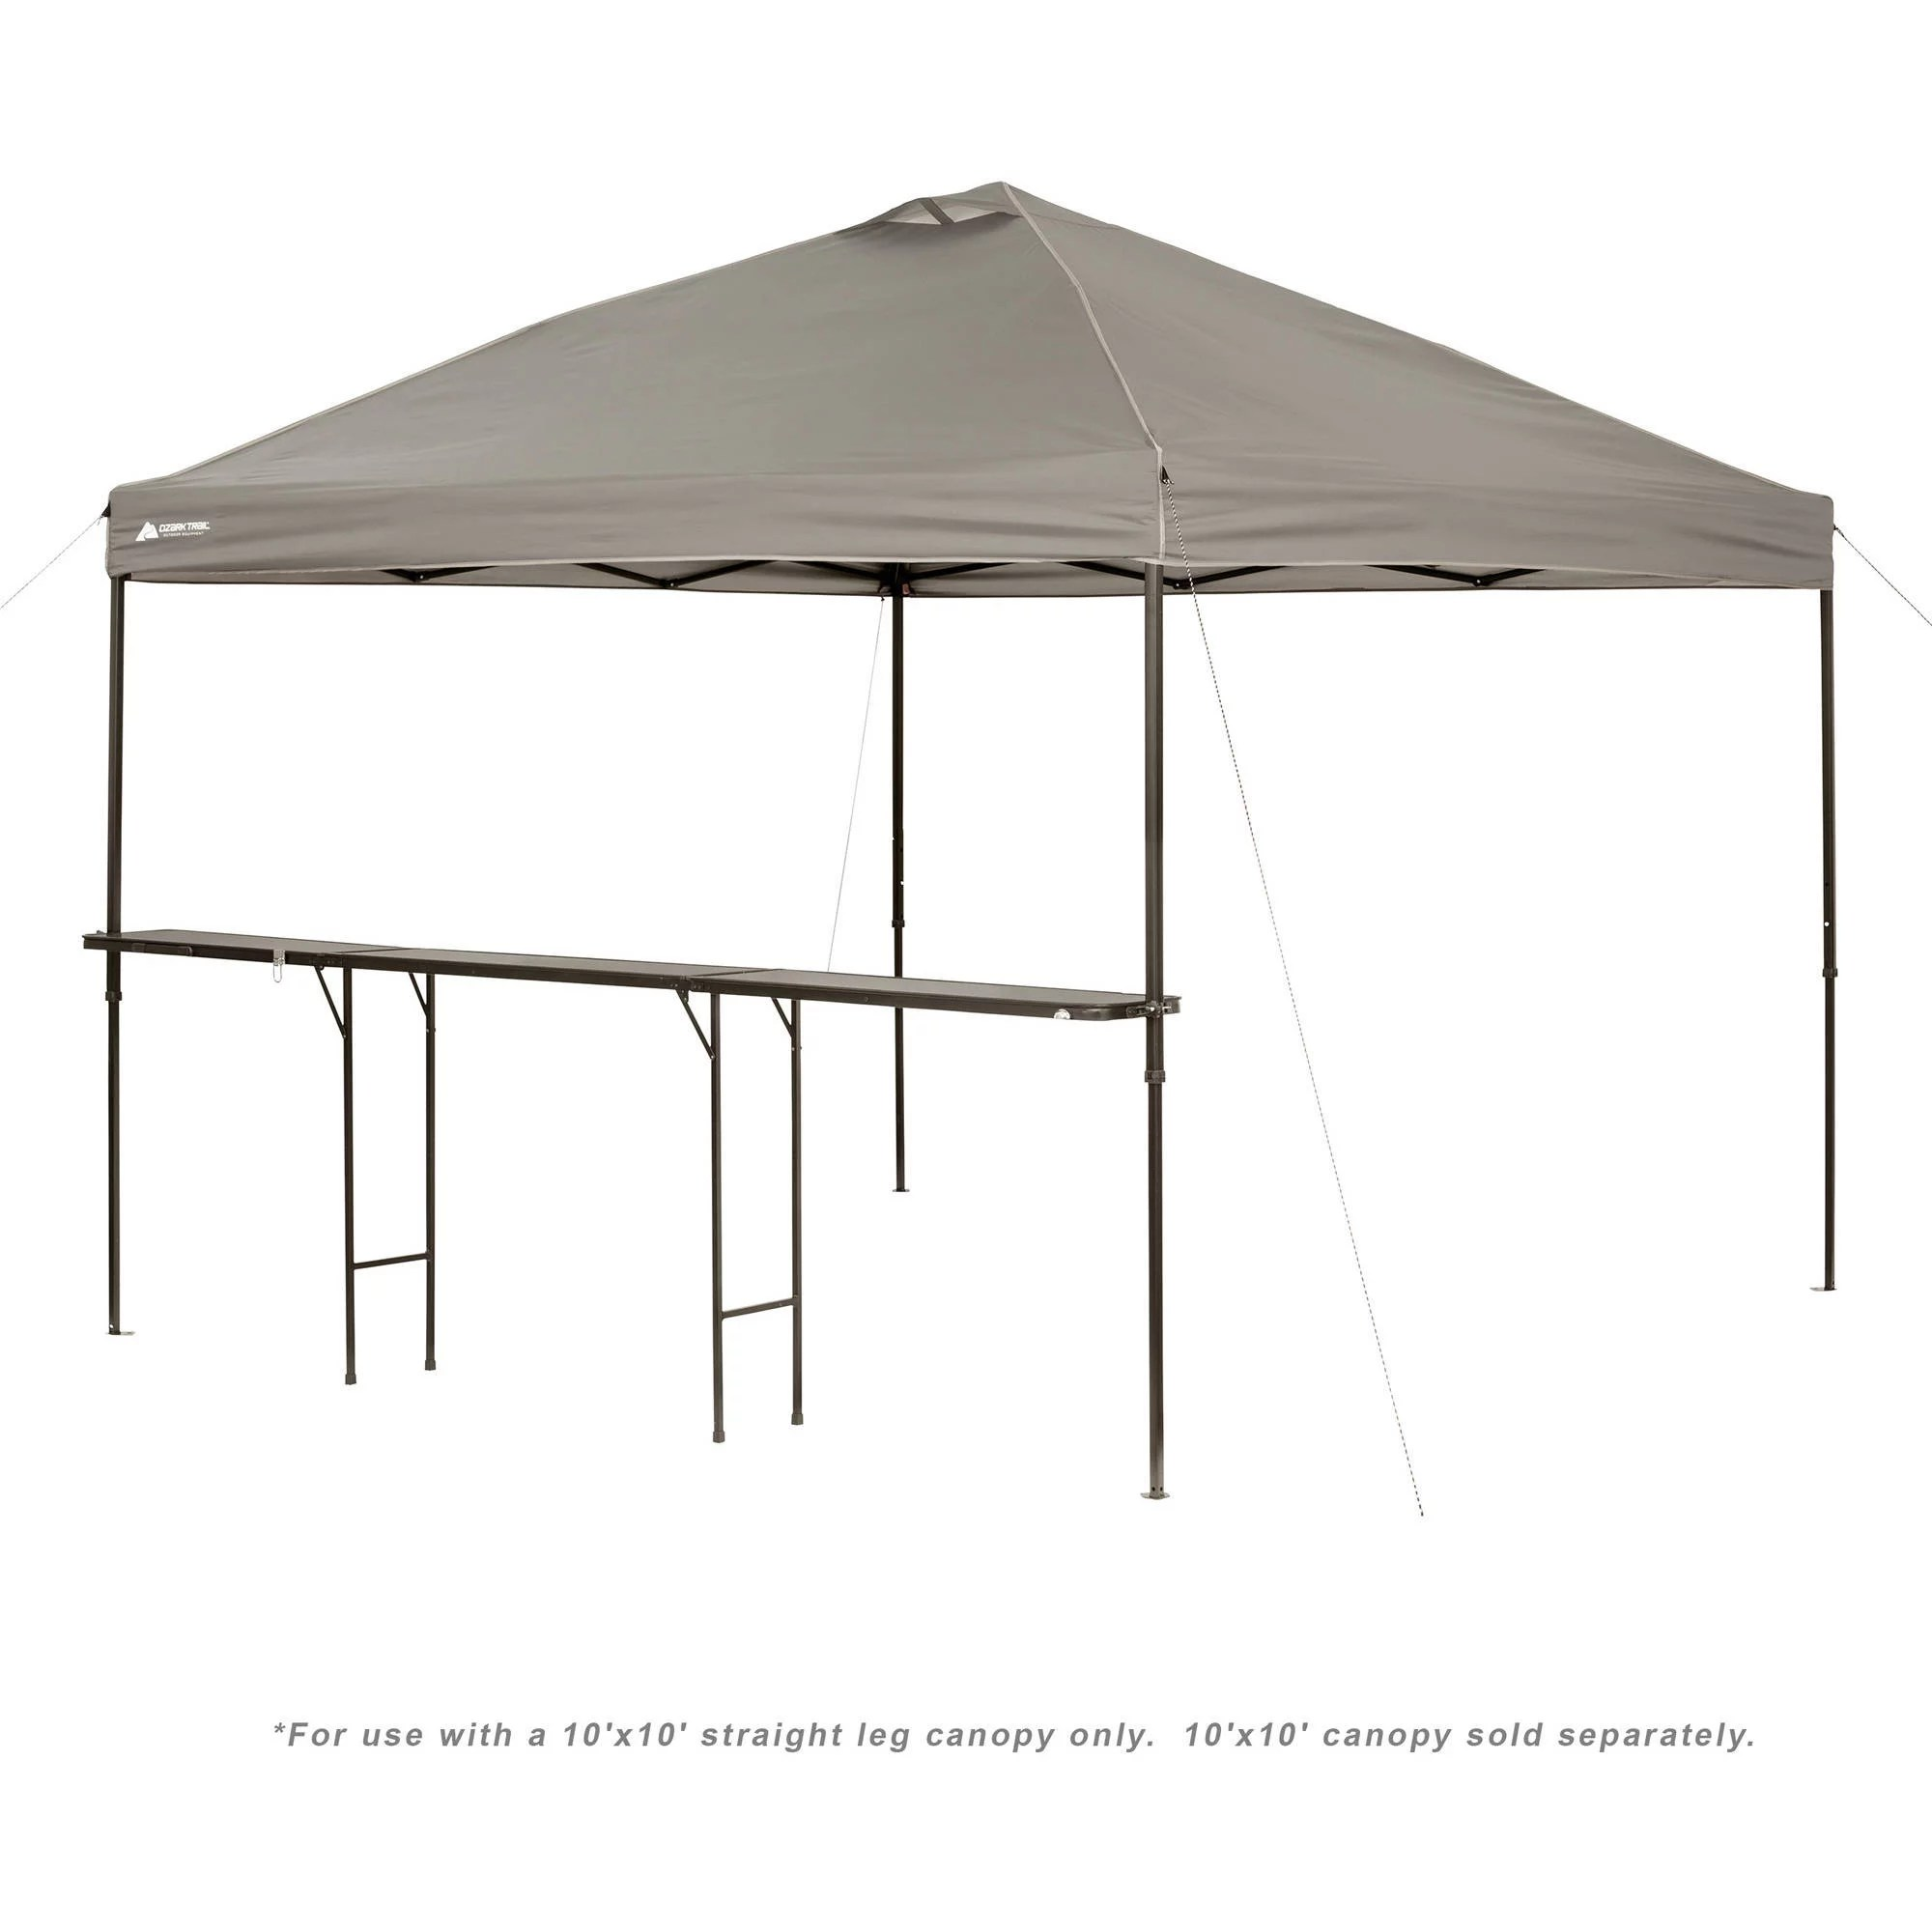 ozark trail bar height 10 folding table for use with canopy canopy not included